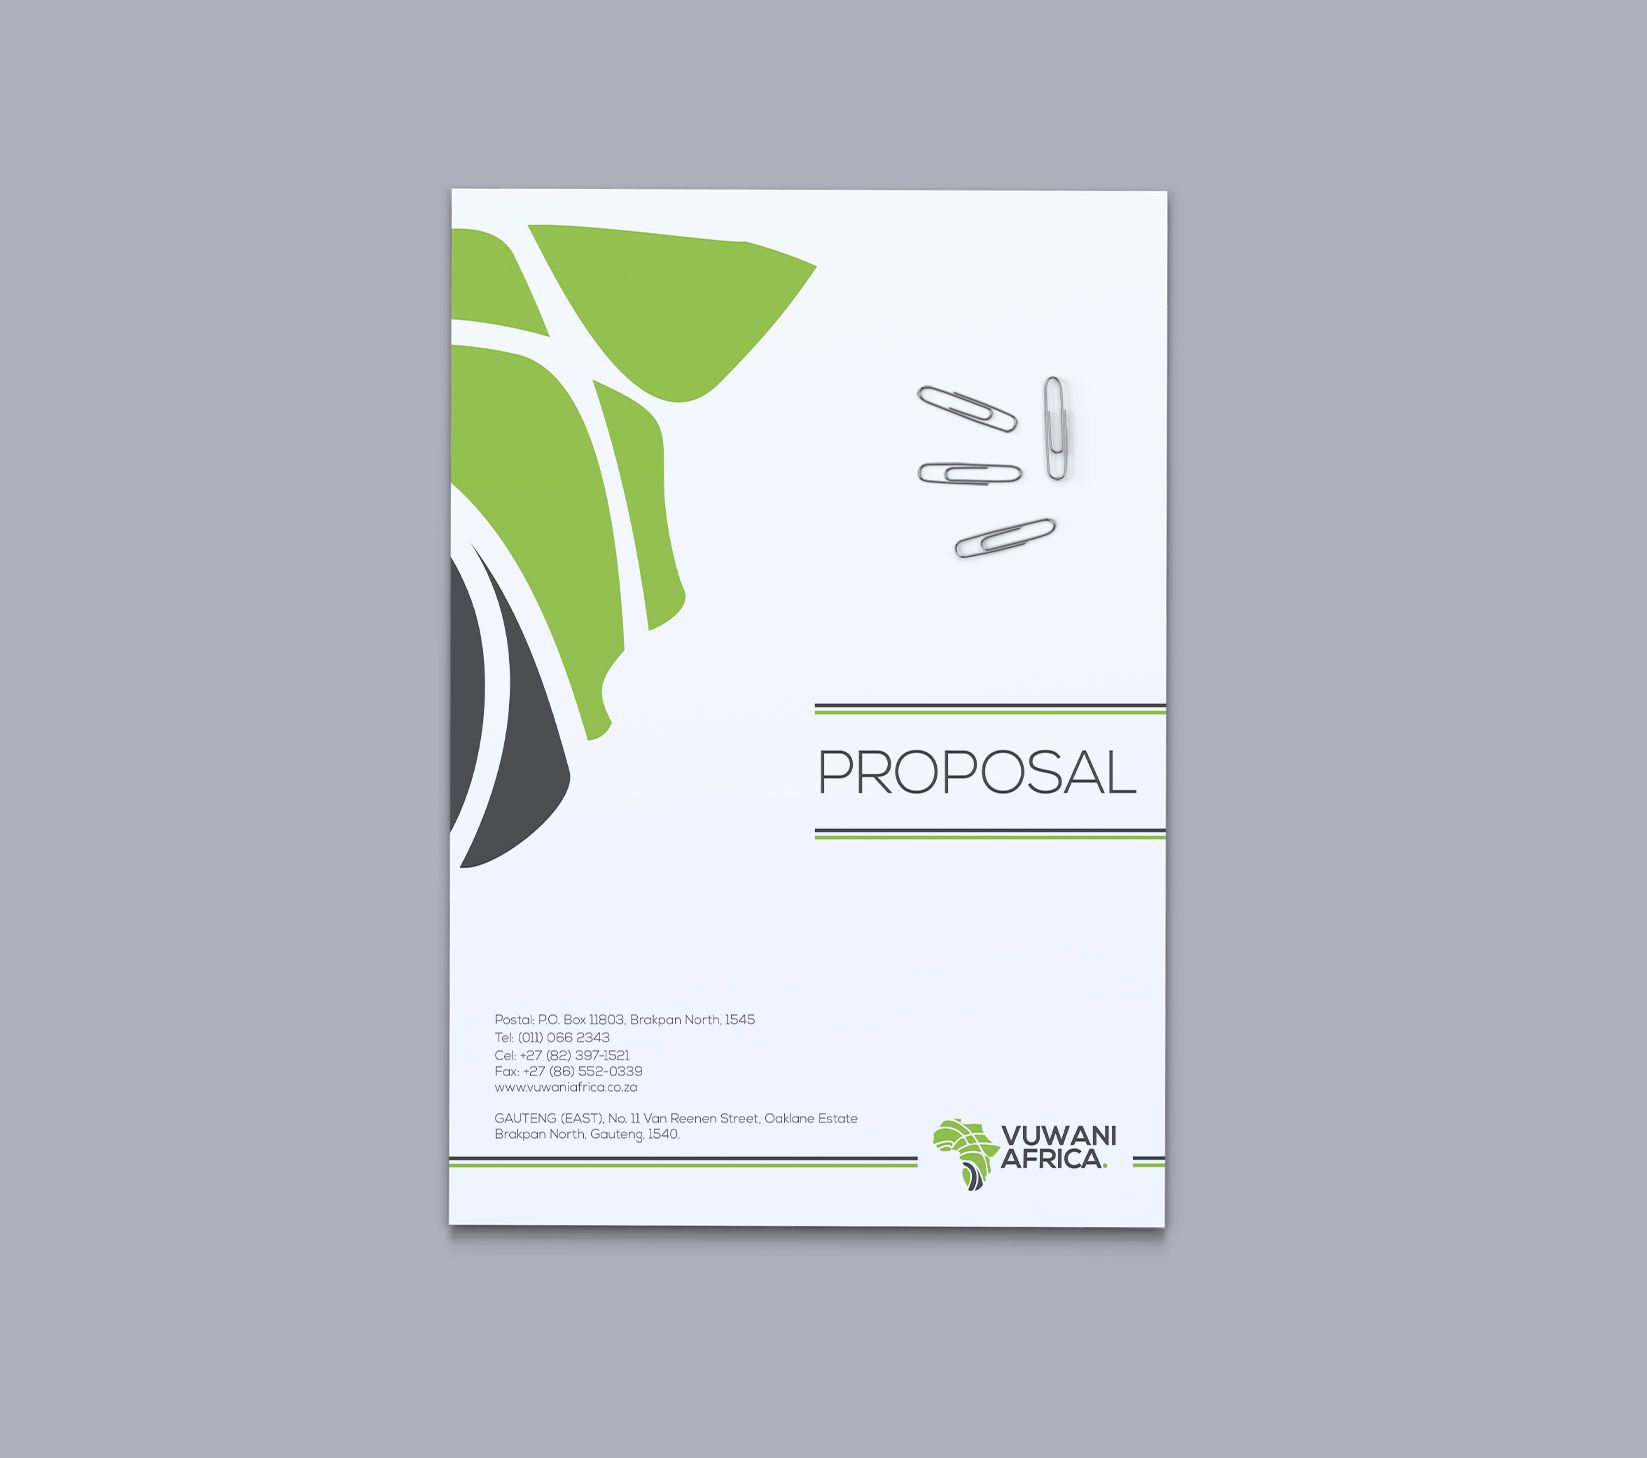 Graphic Design Proposal Sample Graphic Design Proposal Template 9 Free  Documents In Pdf, Design Proposal Template 13 Free Sample Example Format,  ...  Graphic Design Proposal Example